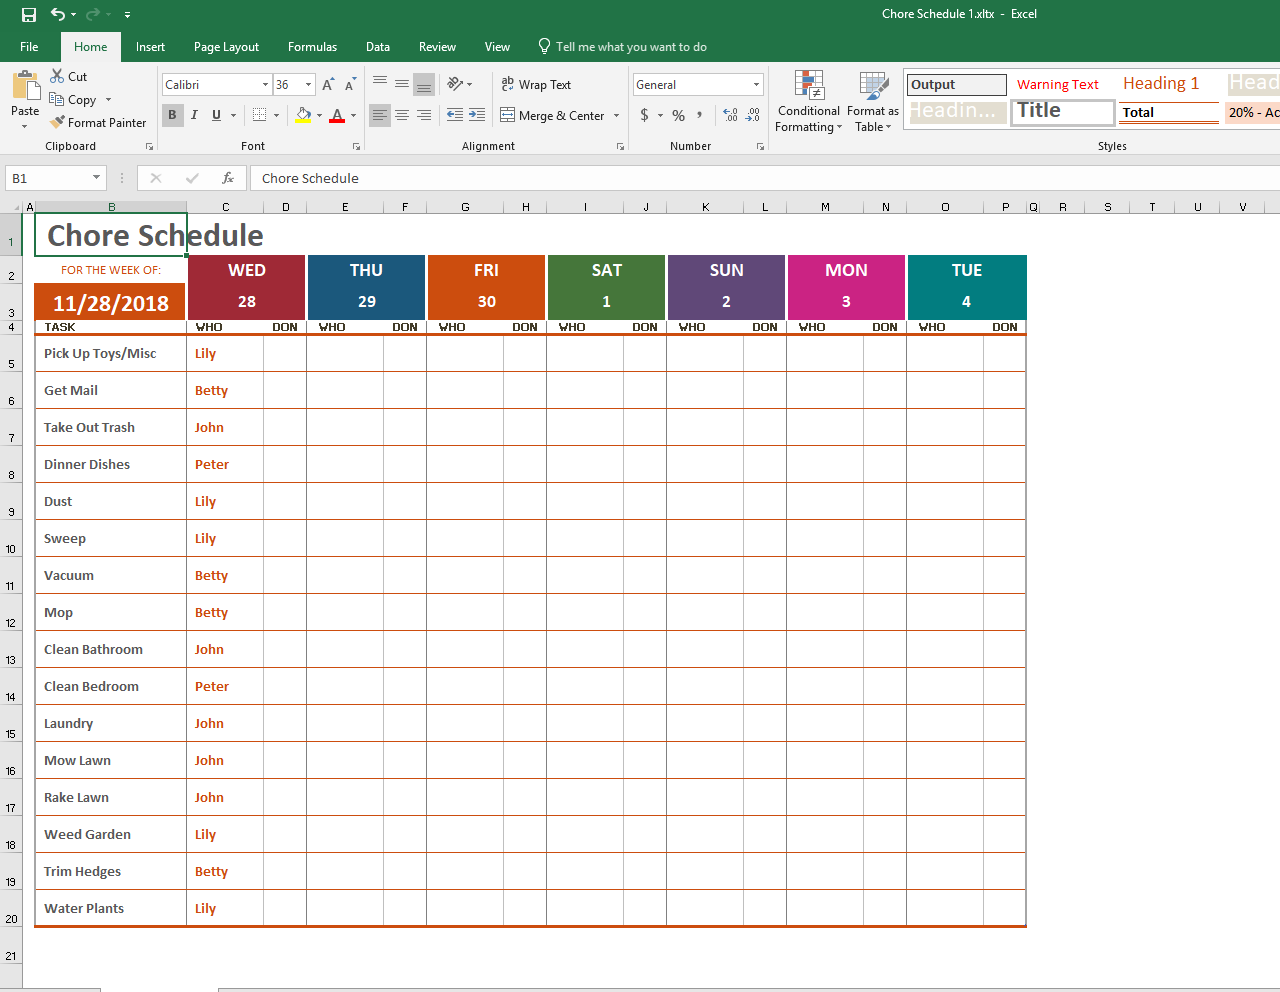 Convert Excel to PDF - Weekly Chore Planner